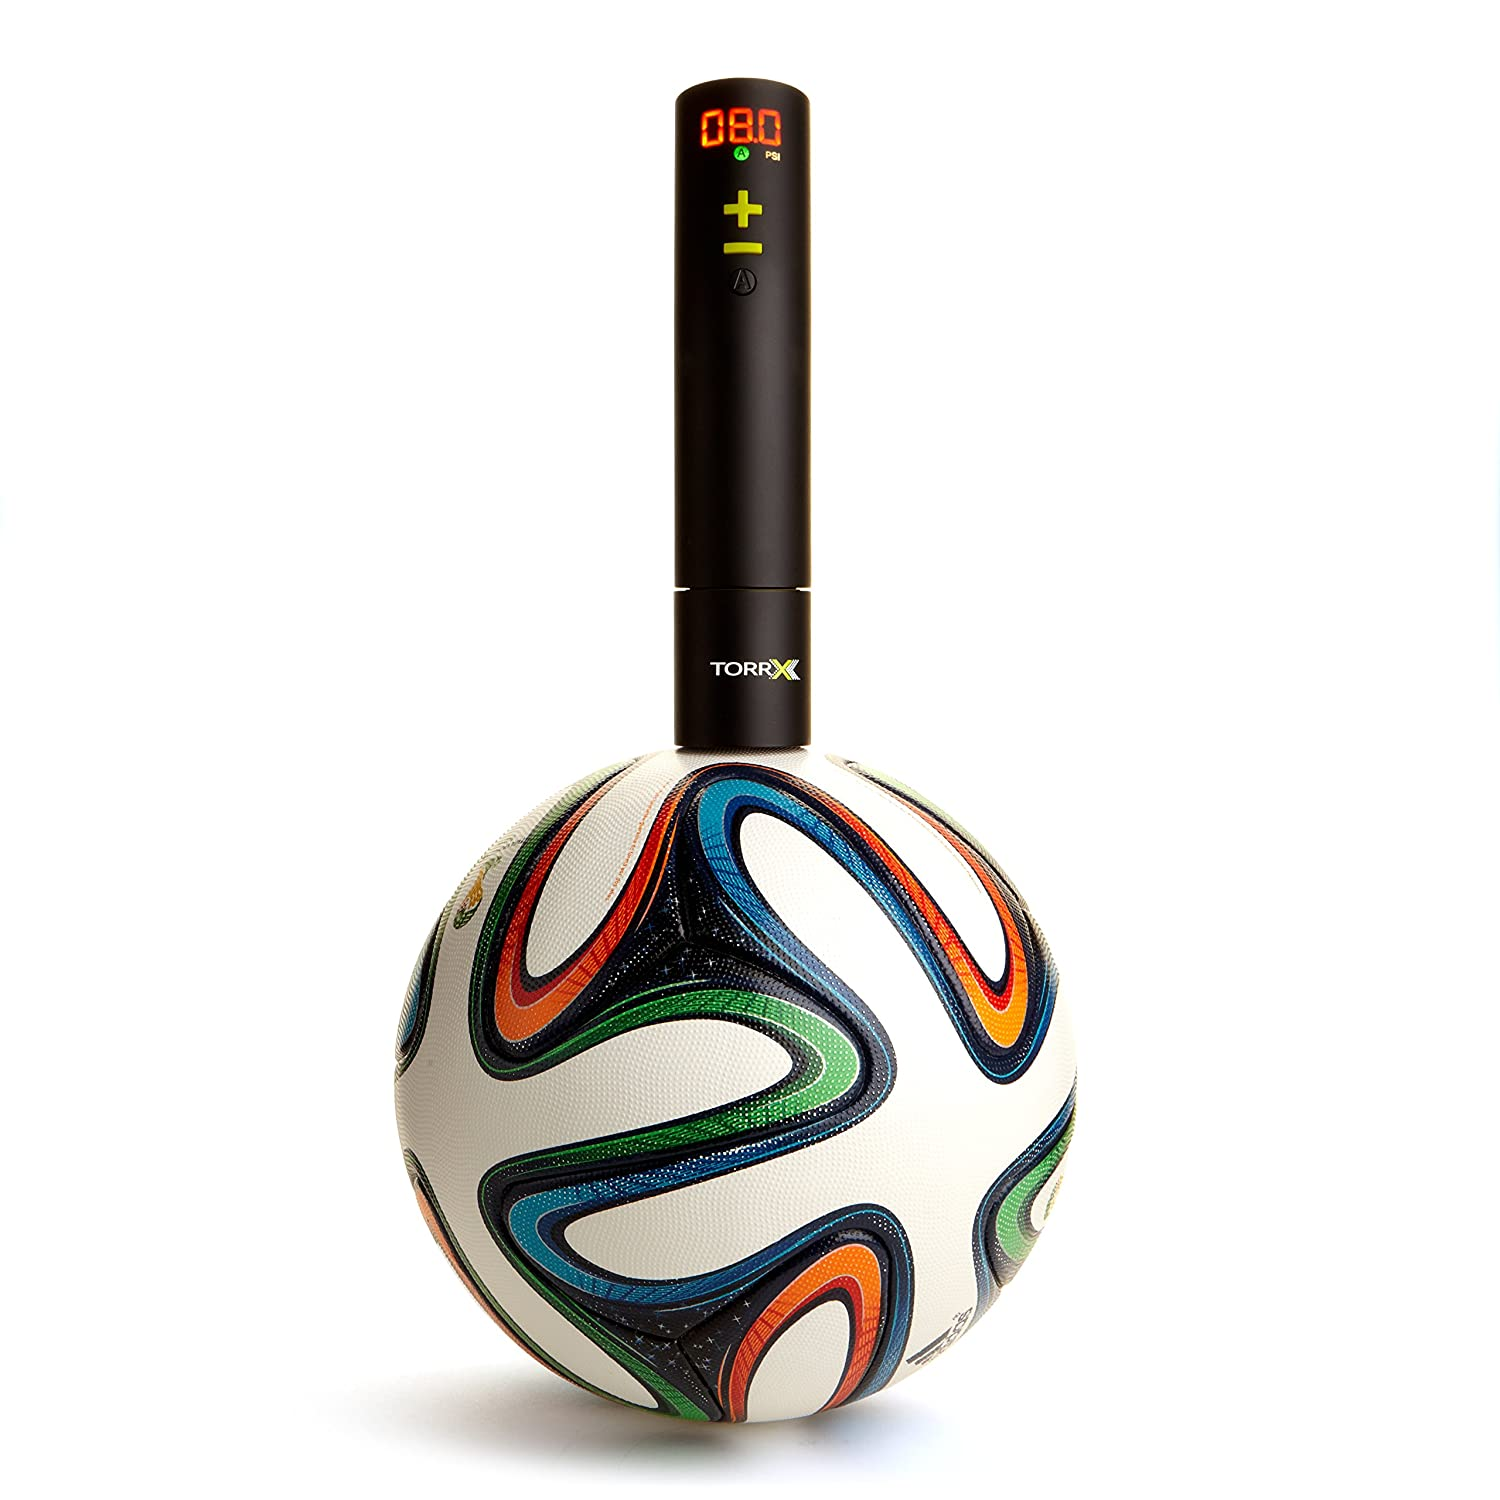 separation shoes 090df 75291 Amazon.com   TorrX Smart Ball Pump - Automatic, Electric, Hand held Pump to  inflate and Deflate Sports Balls (Soccer, Football, Volleyball, Basketball,  ...